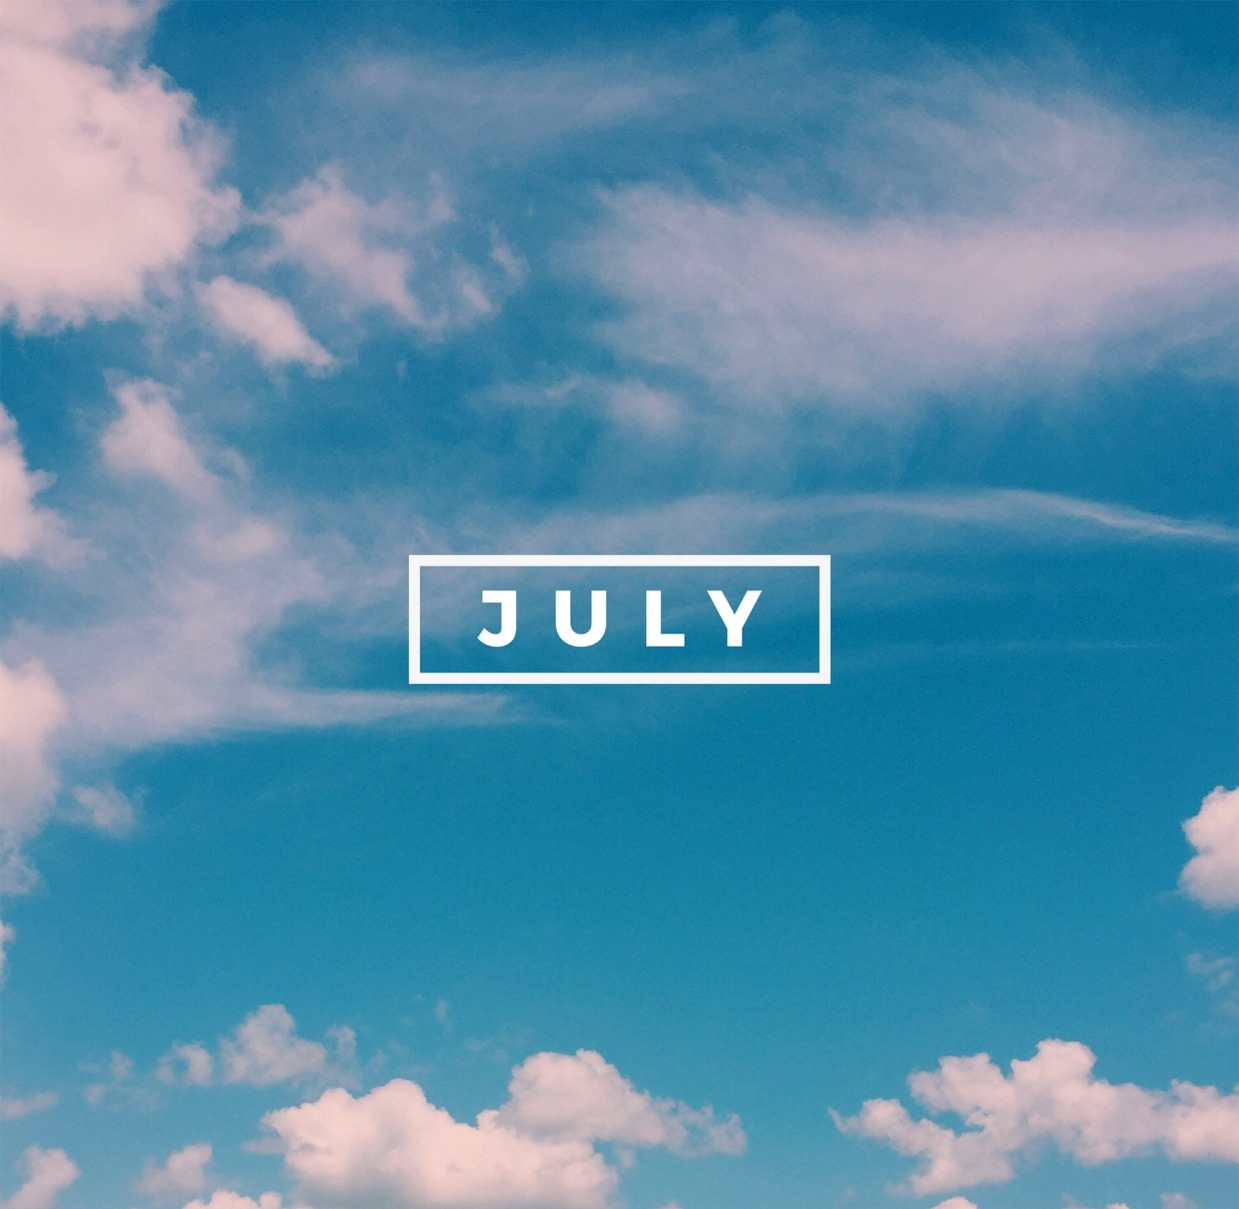 July is your month of